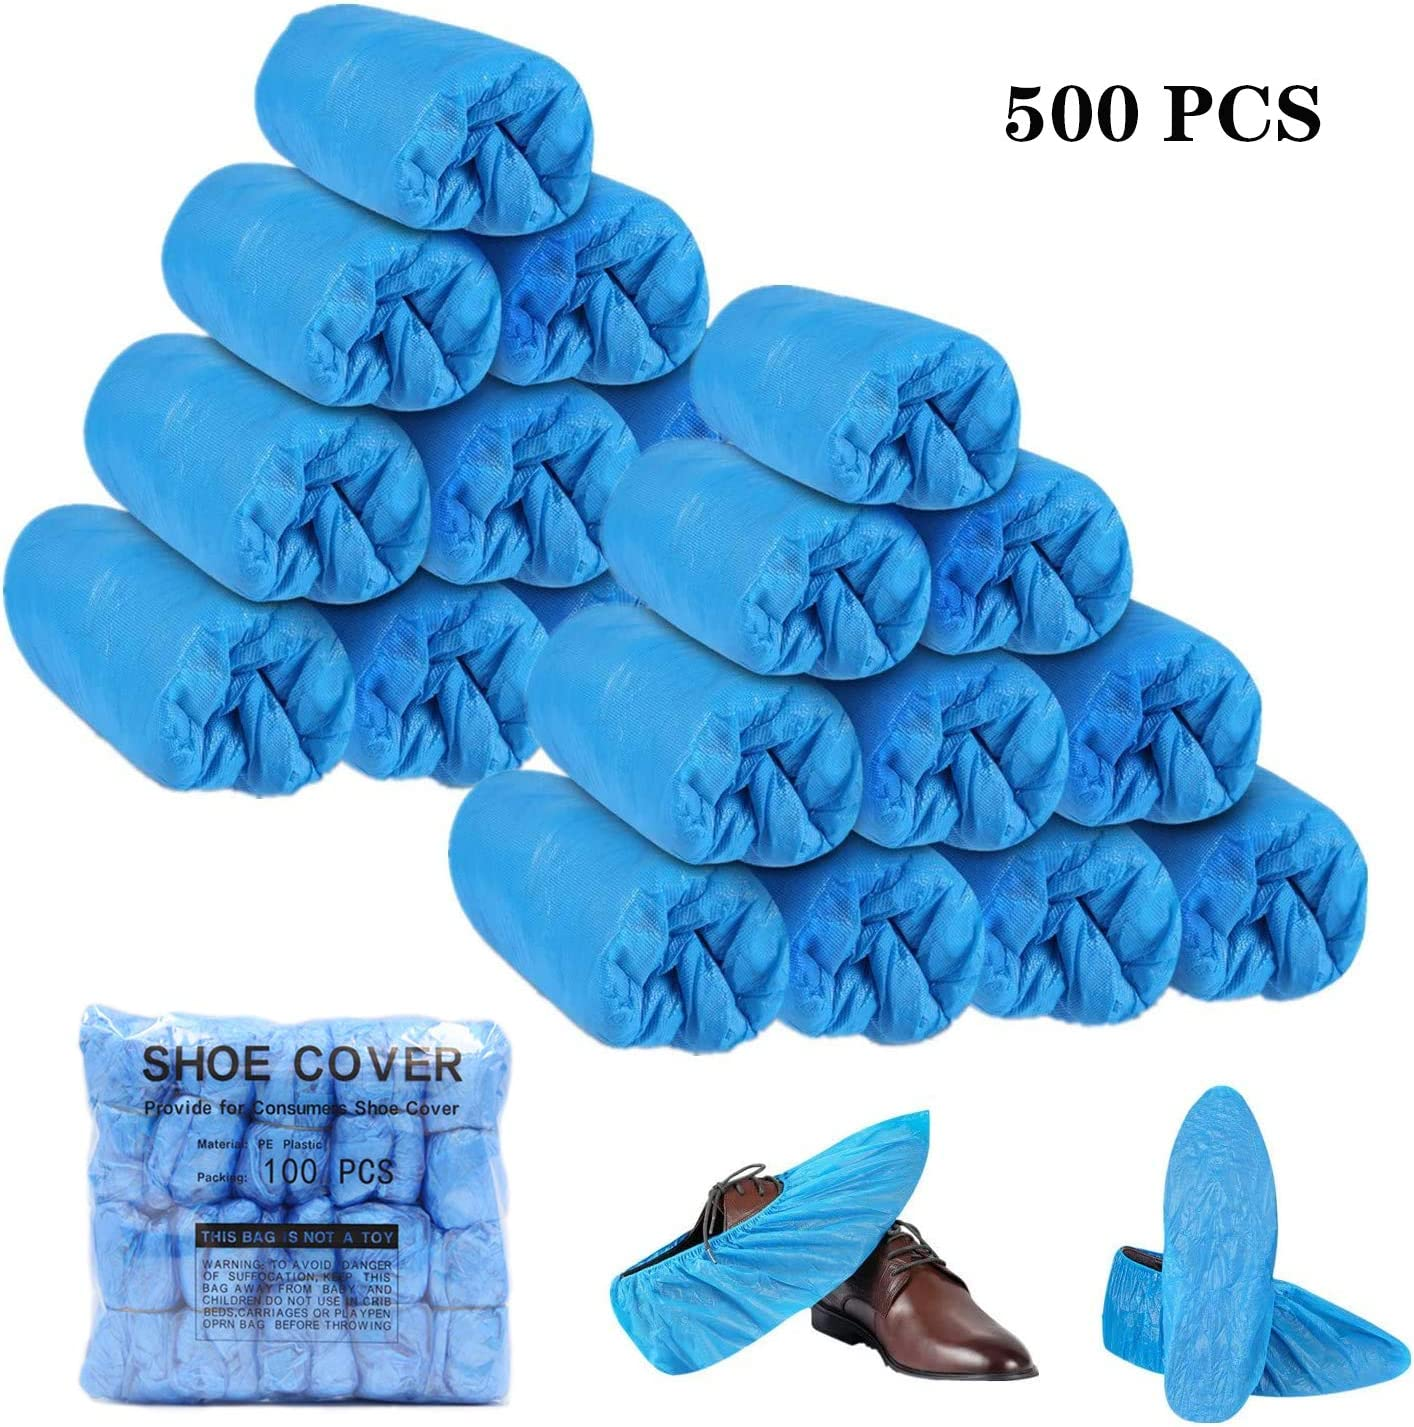 500 PCS Offices,Floor Carpet Protection,One Size Fits All Shoe Covers Disposable Waterproof Shoe Cover Non-slip Shoe Protector Overshoes for Construction